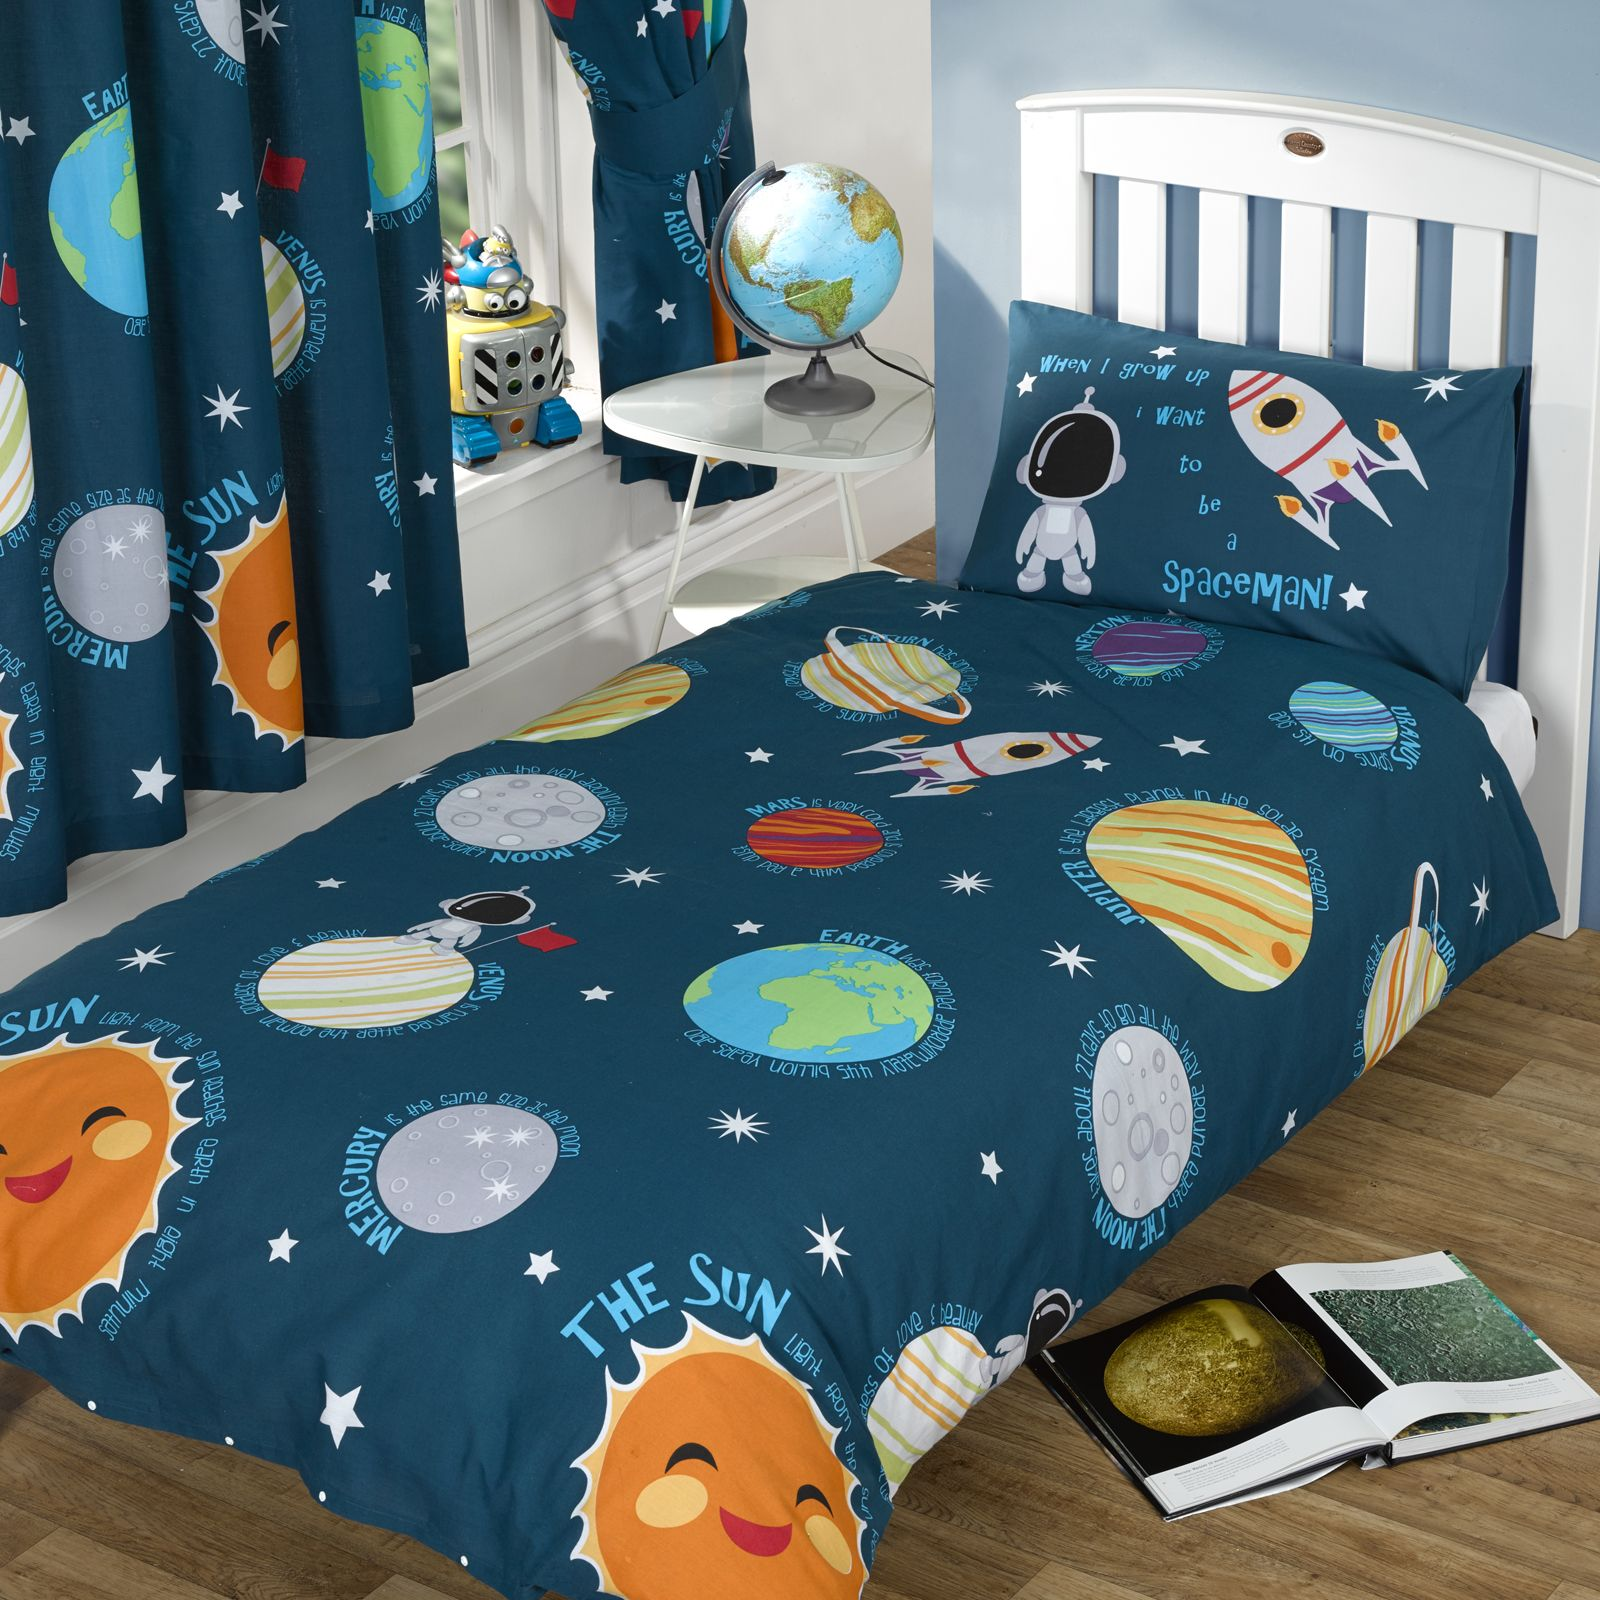 solar system bed sets - photo #15